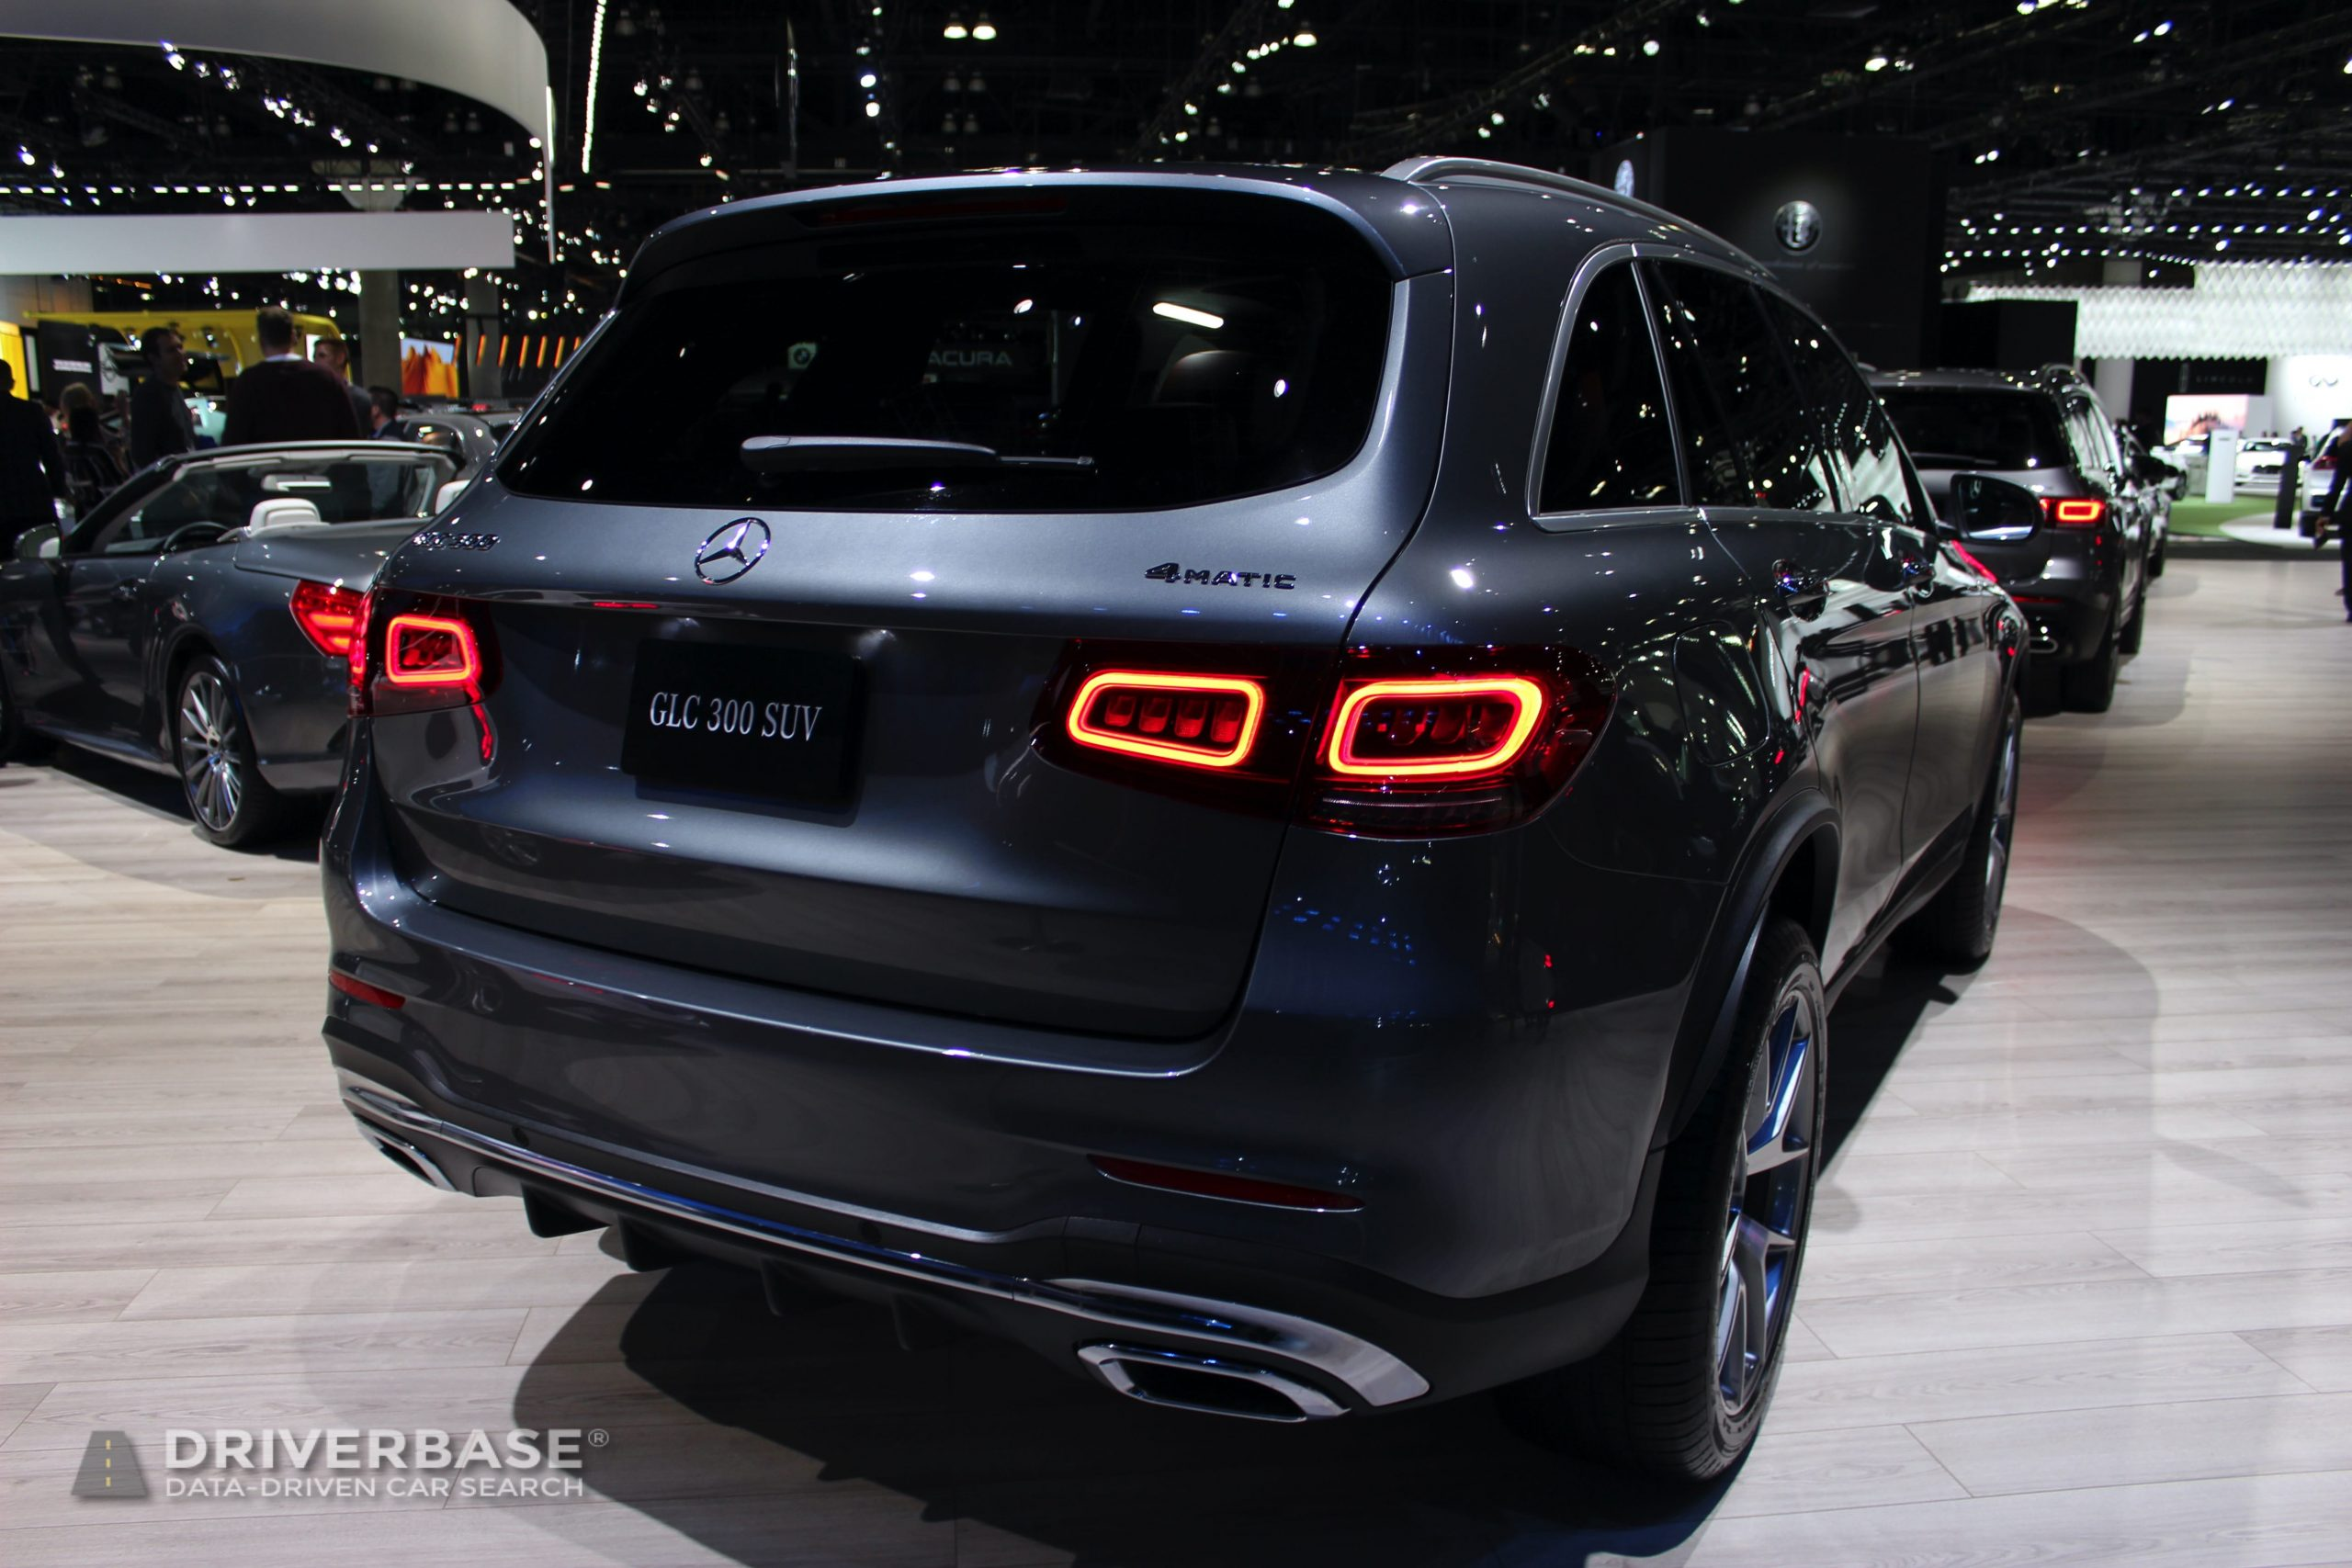 2020 Mercedes-Benz GLC 300 at the 2019 Los Angeles Auto Show